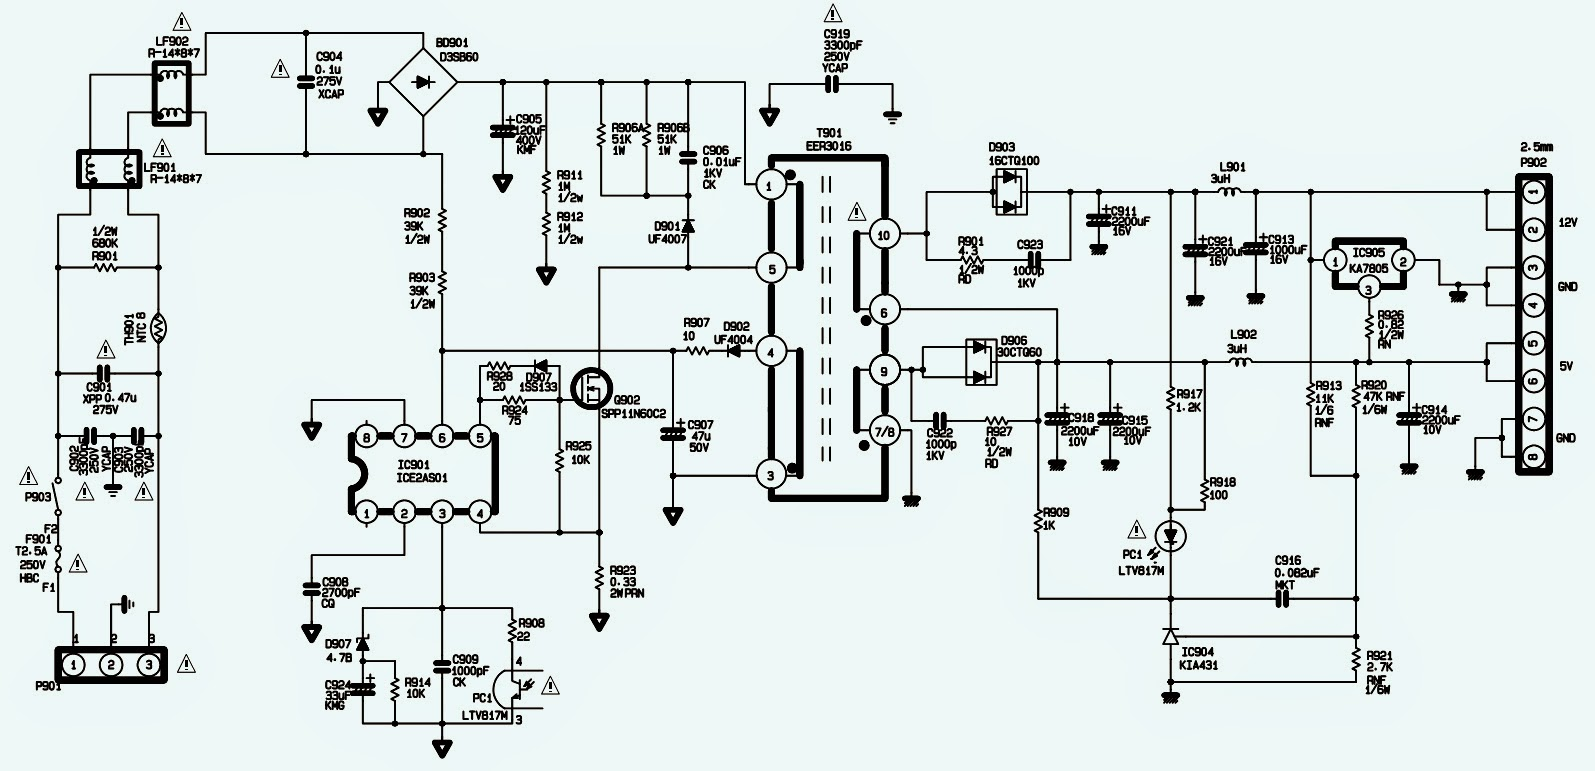 Wiring Schematic Diagram Lg Flatron L1810b Monitor Smps Schematic Circuit  Diagram Monitor Wiring Diagram